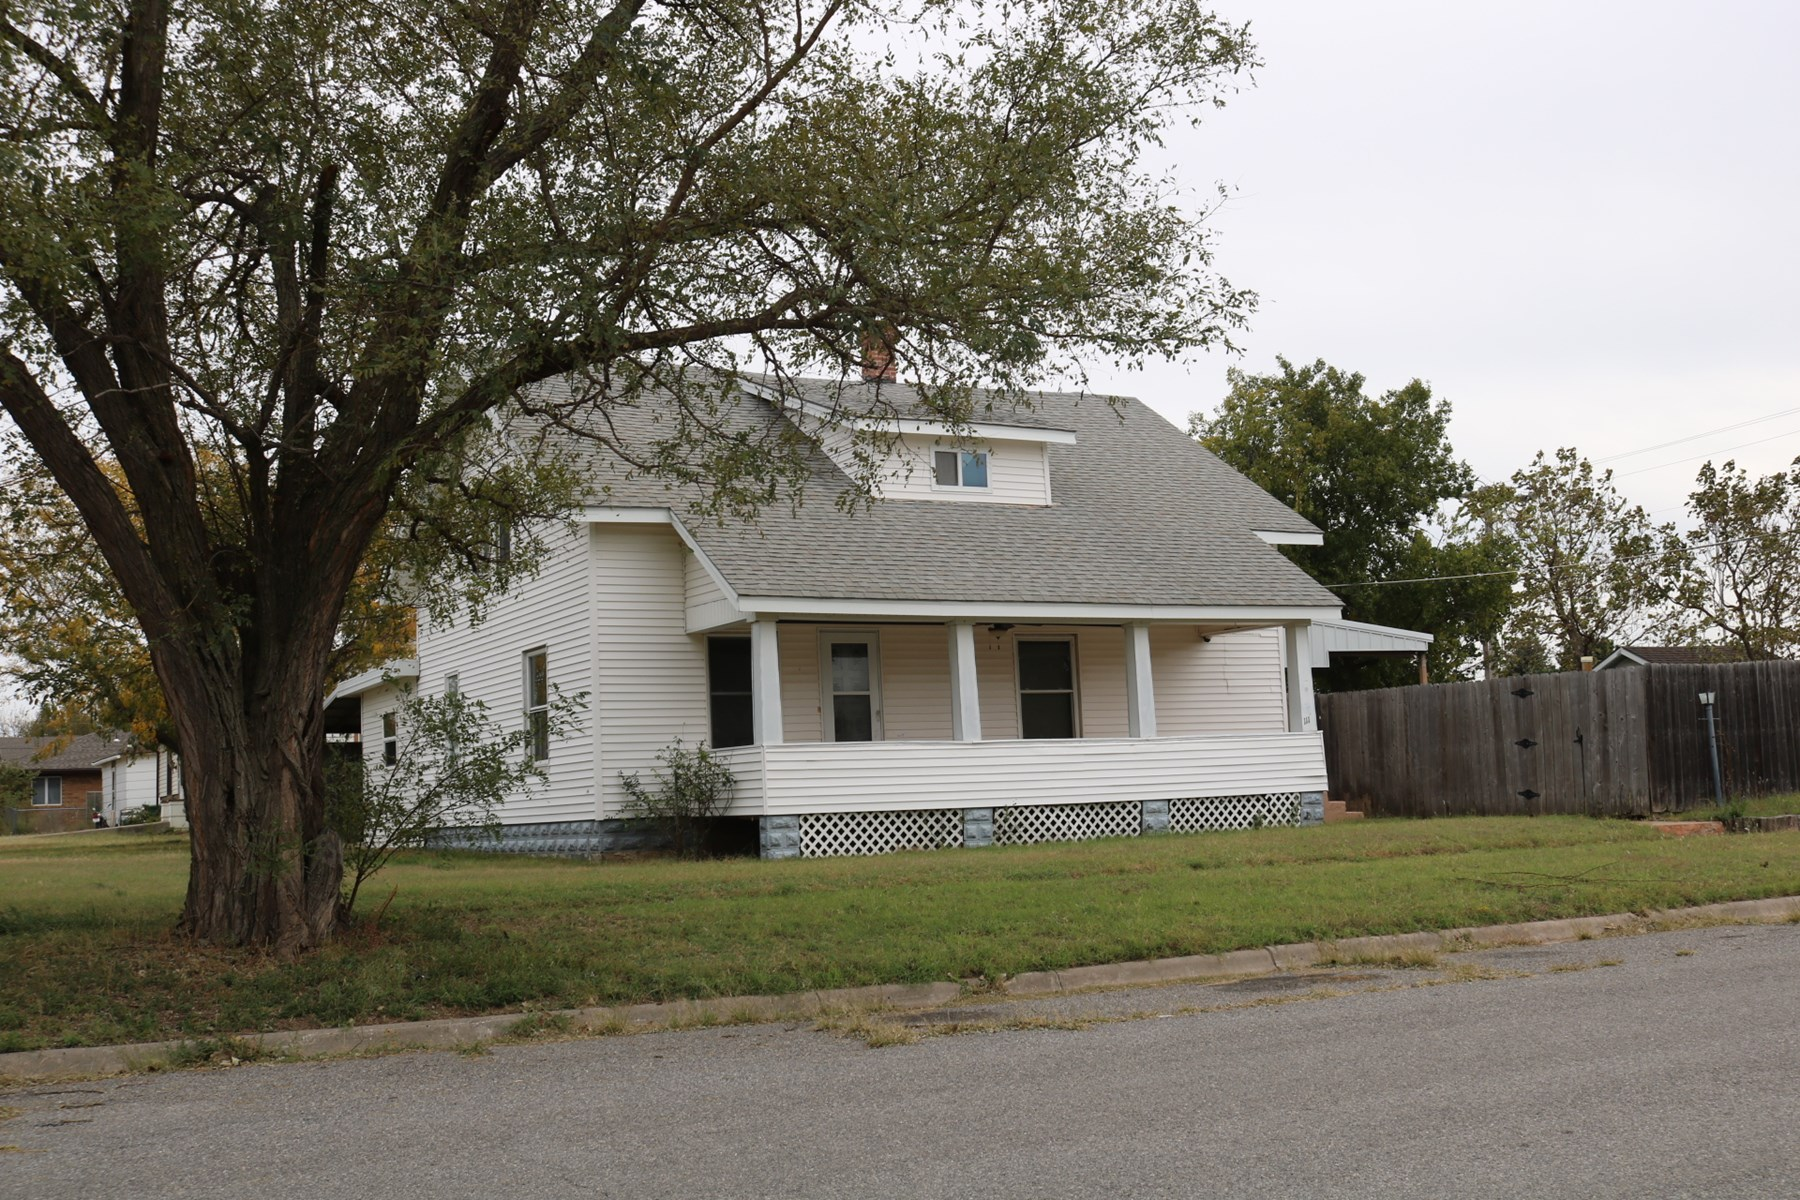 Historic 1 1/2 Story Home Coldwater, Kansas For Sale